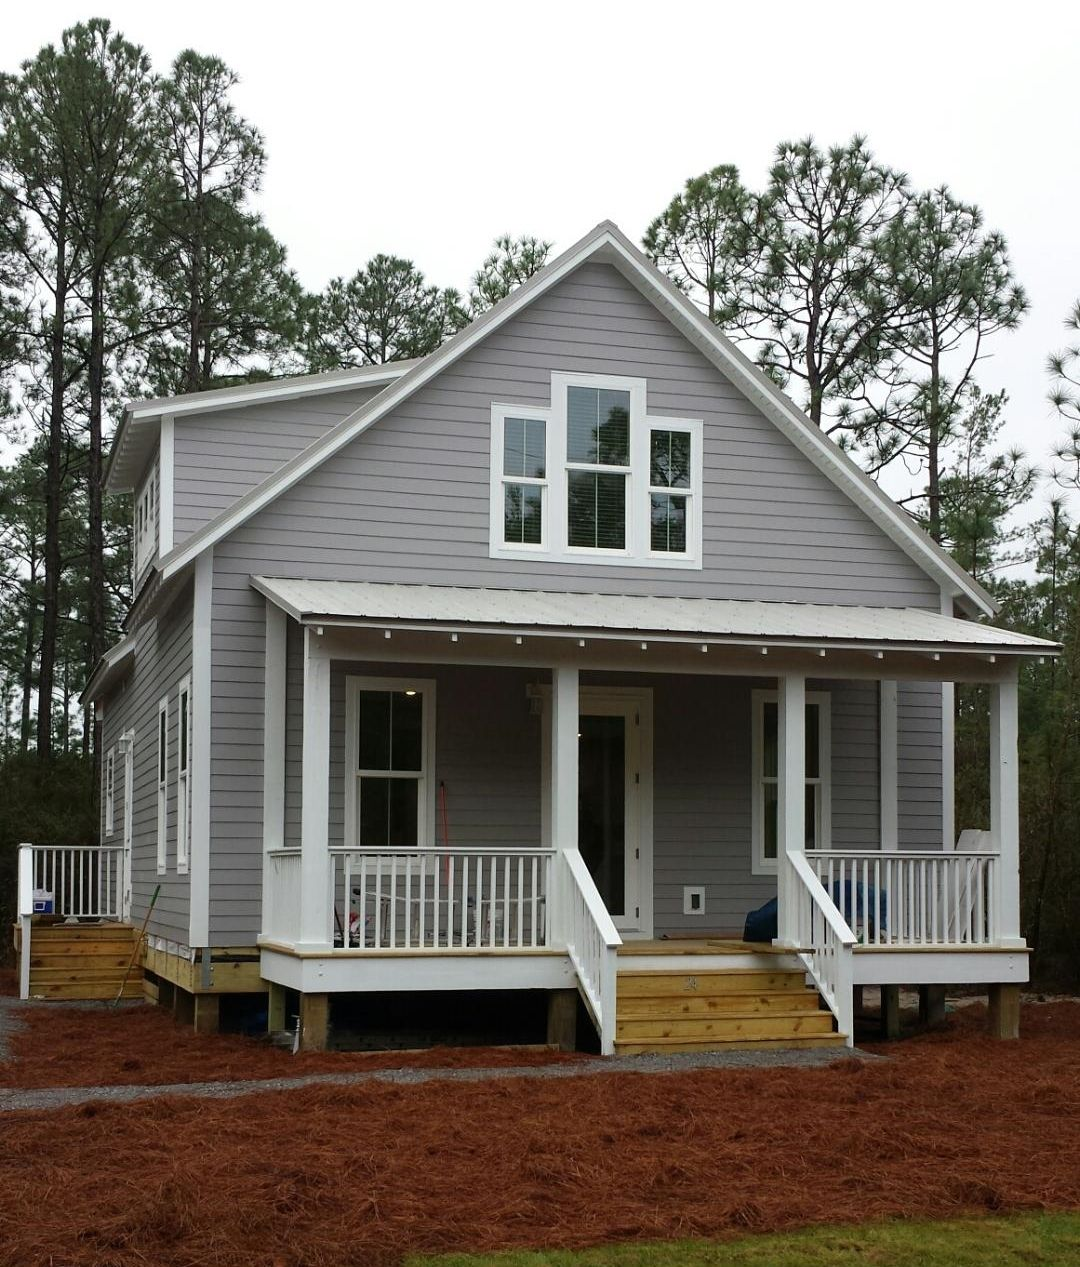 greenbriar modular home santa rosa beach florida custom